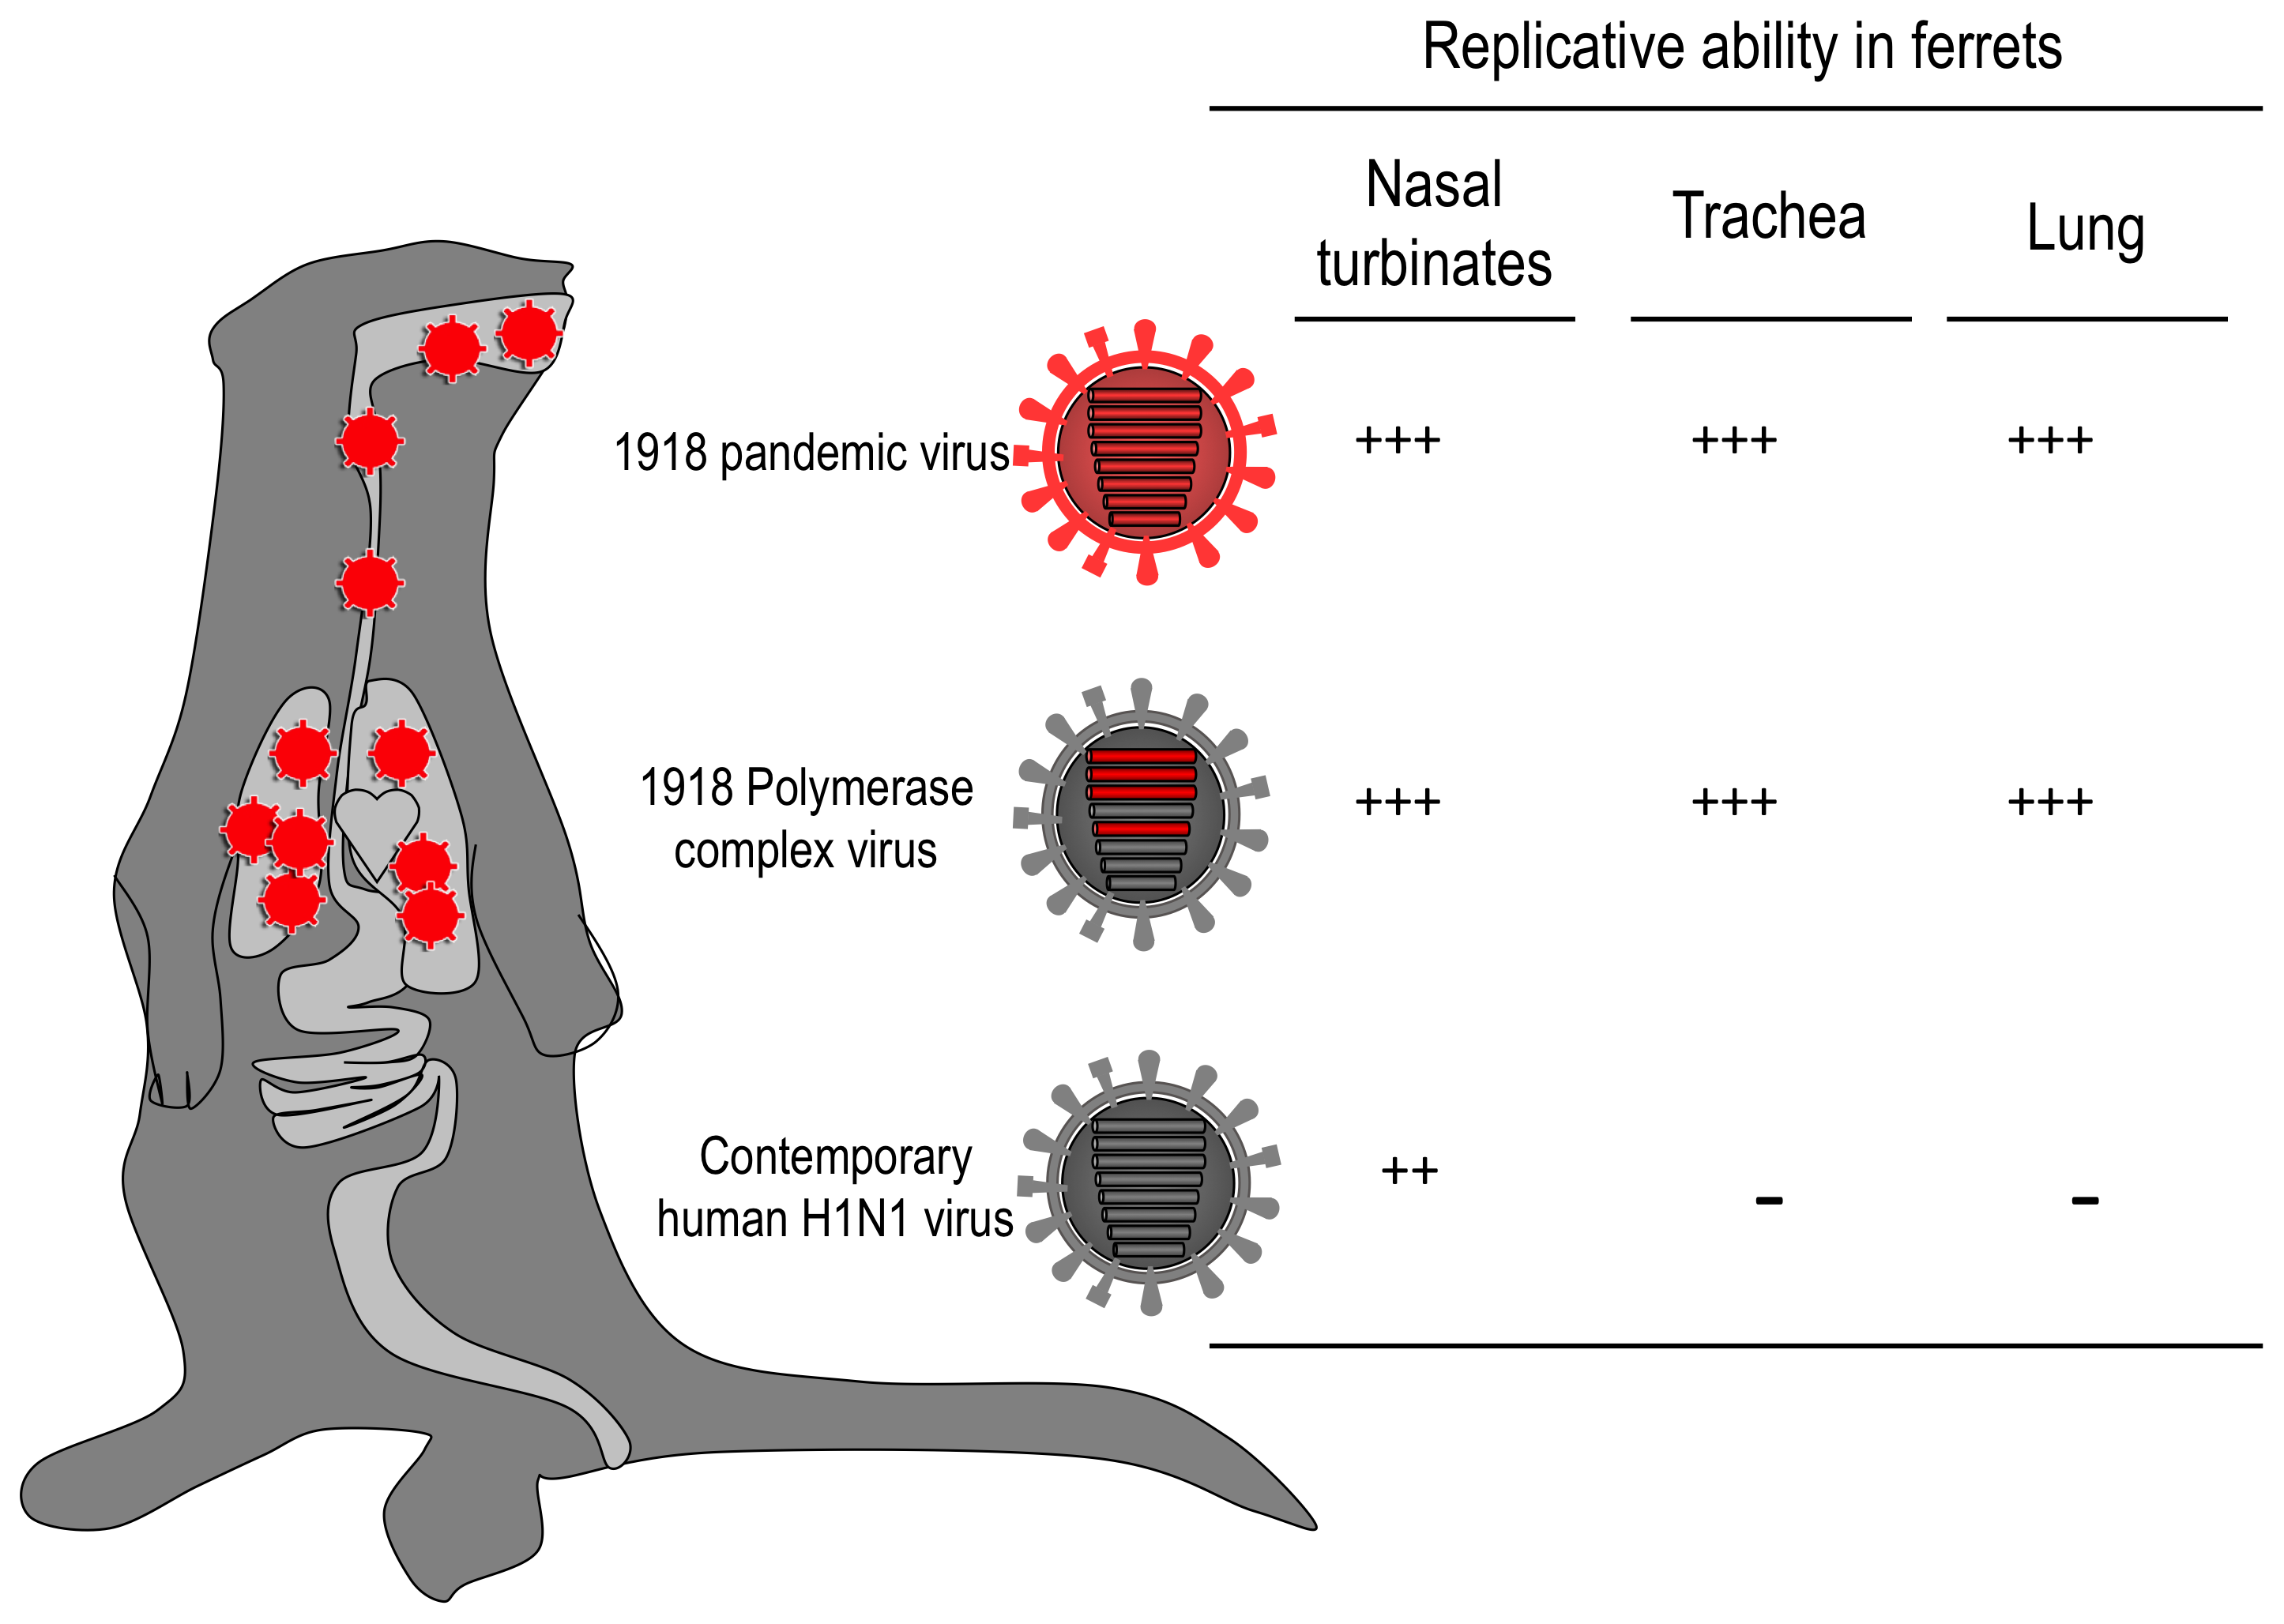 The role of the viral RNA polymerase complex in the replication properties of the 1918 virus in ferrets.